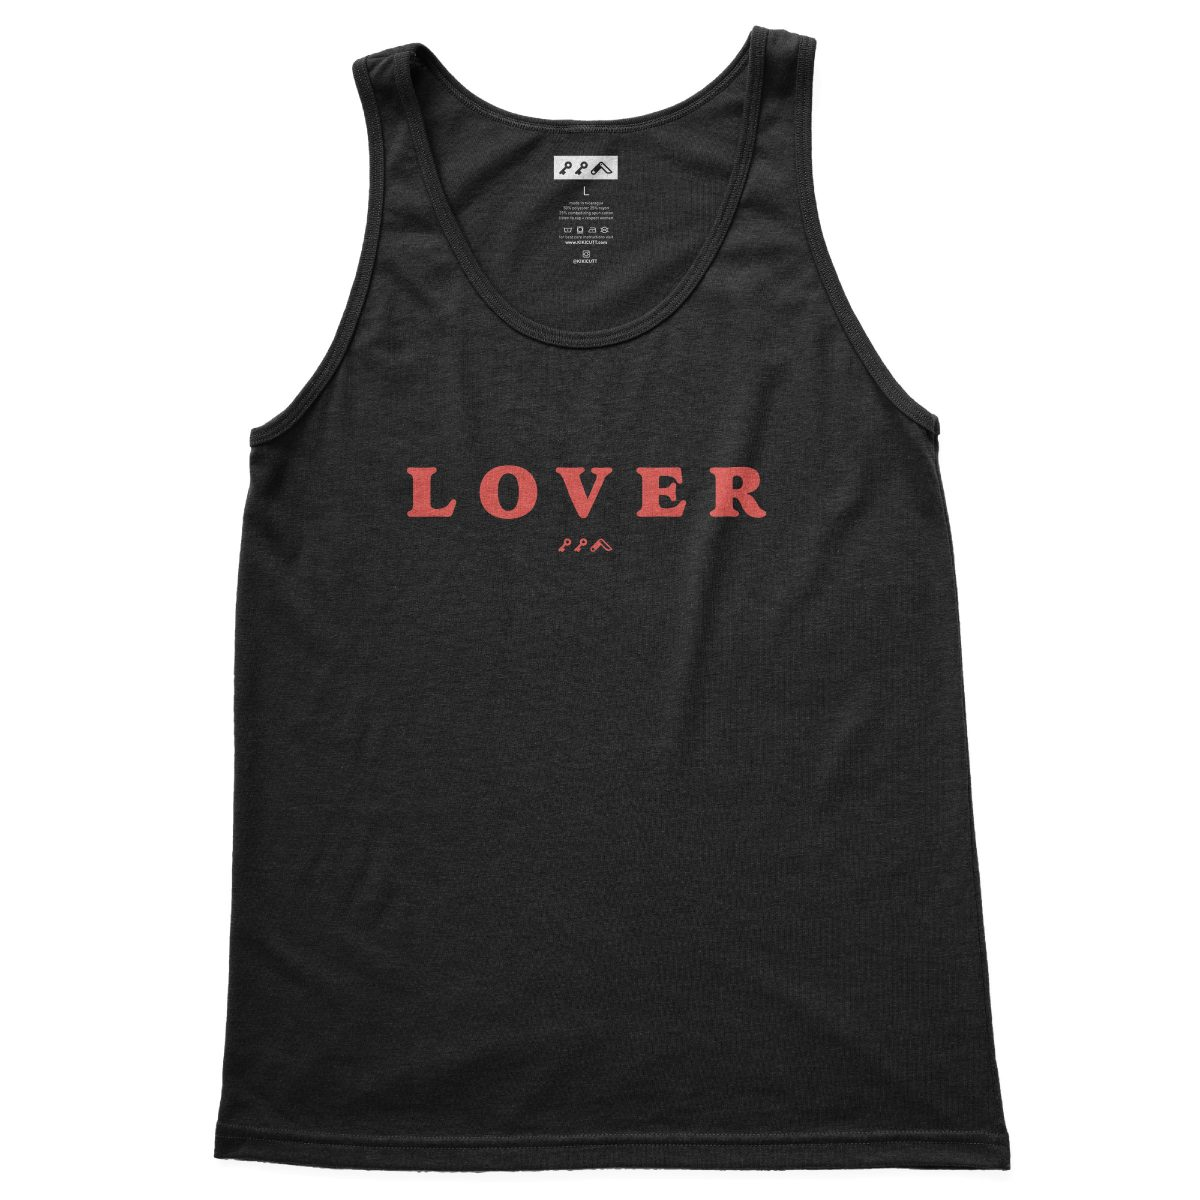 LOVER soft tank top in black at kikicutt.com